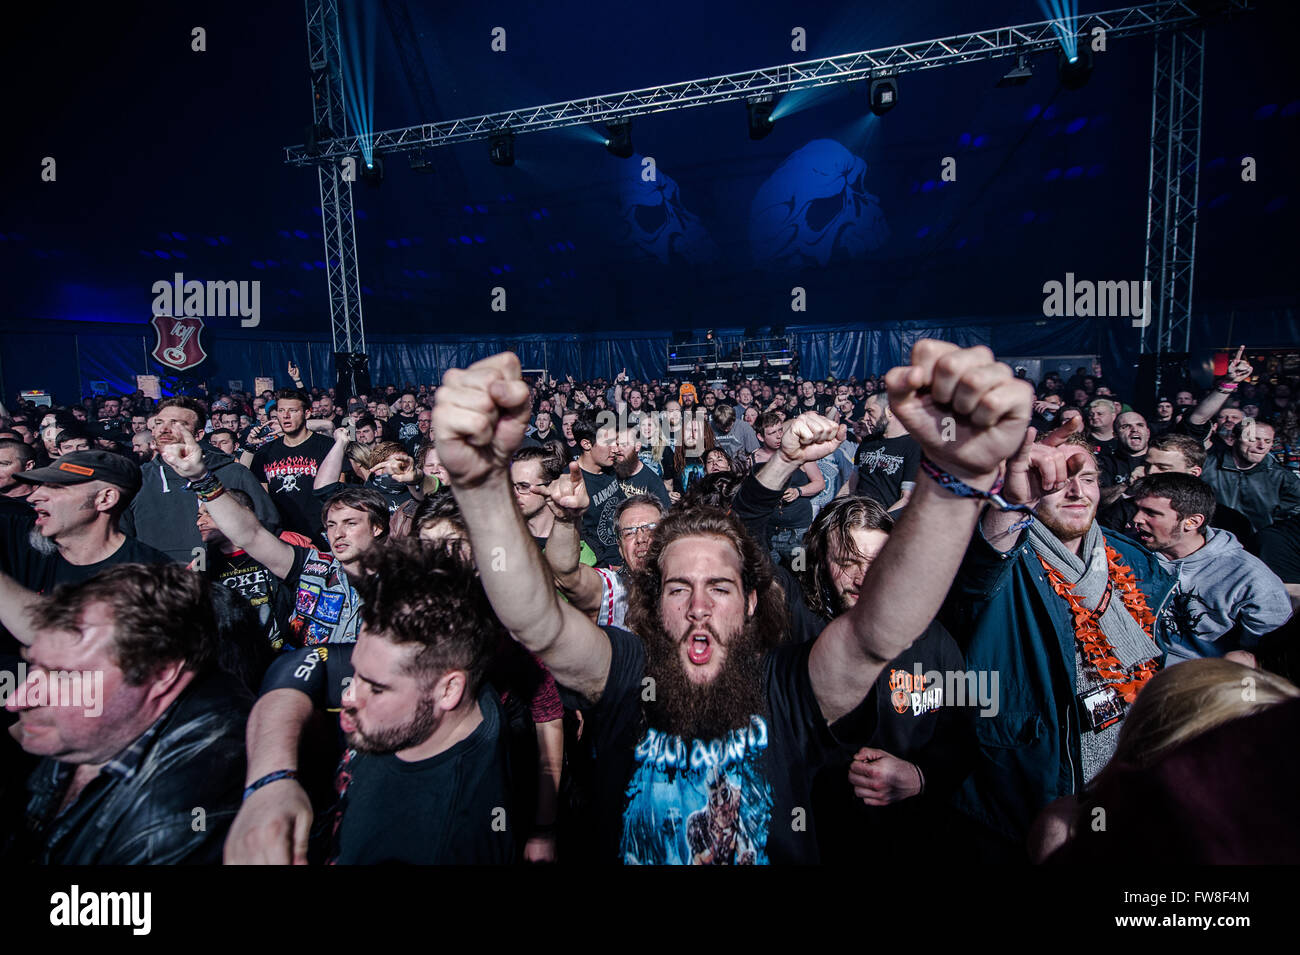 Free dating sites for heavy metal fans